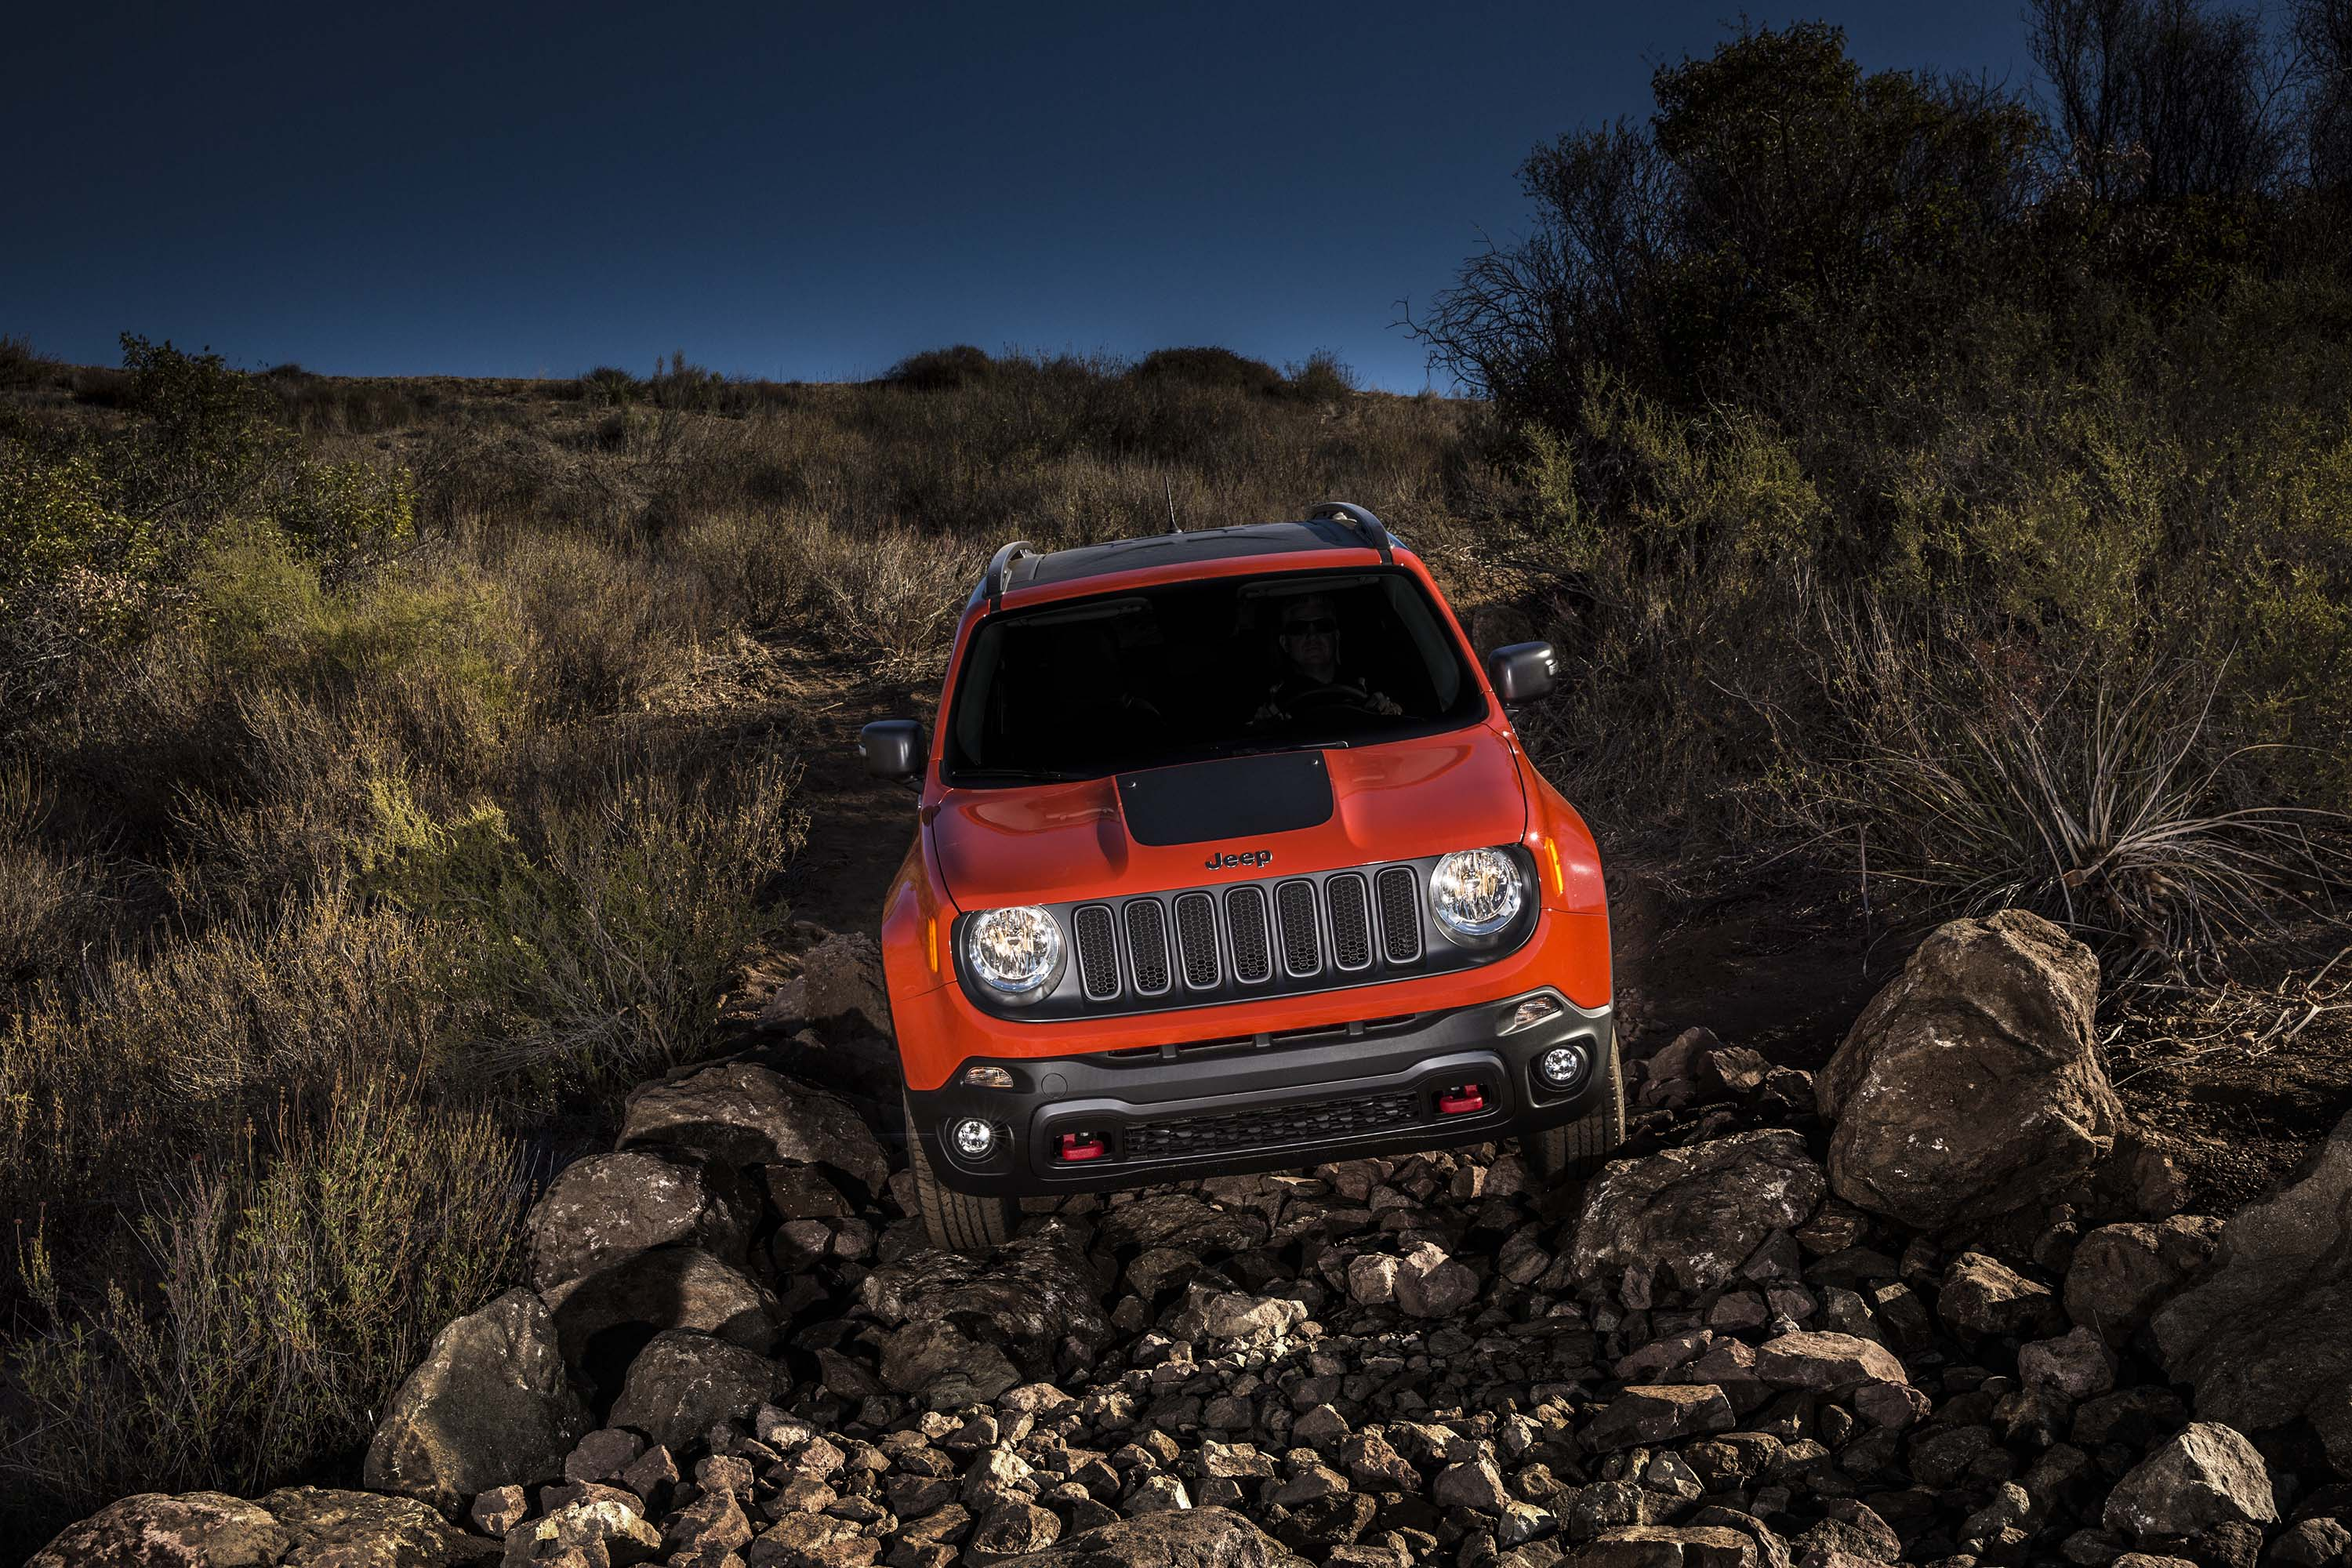 Italian plant will reportedly build sub-Renegade sized Jeep model